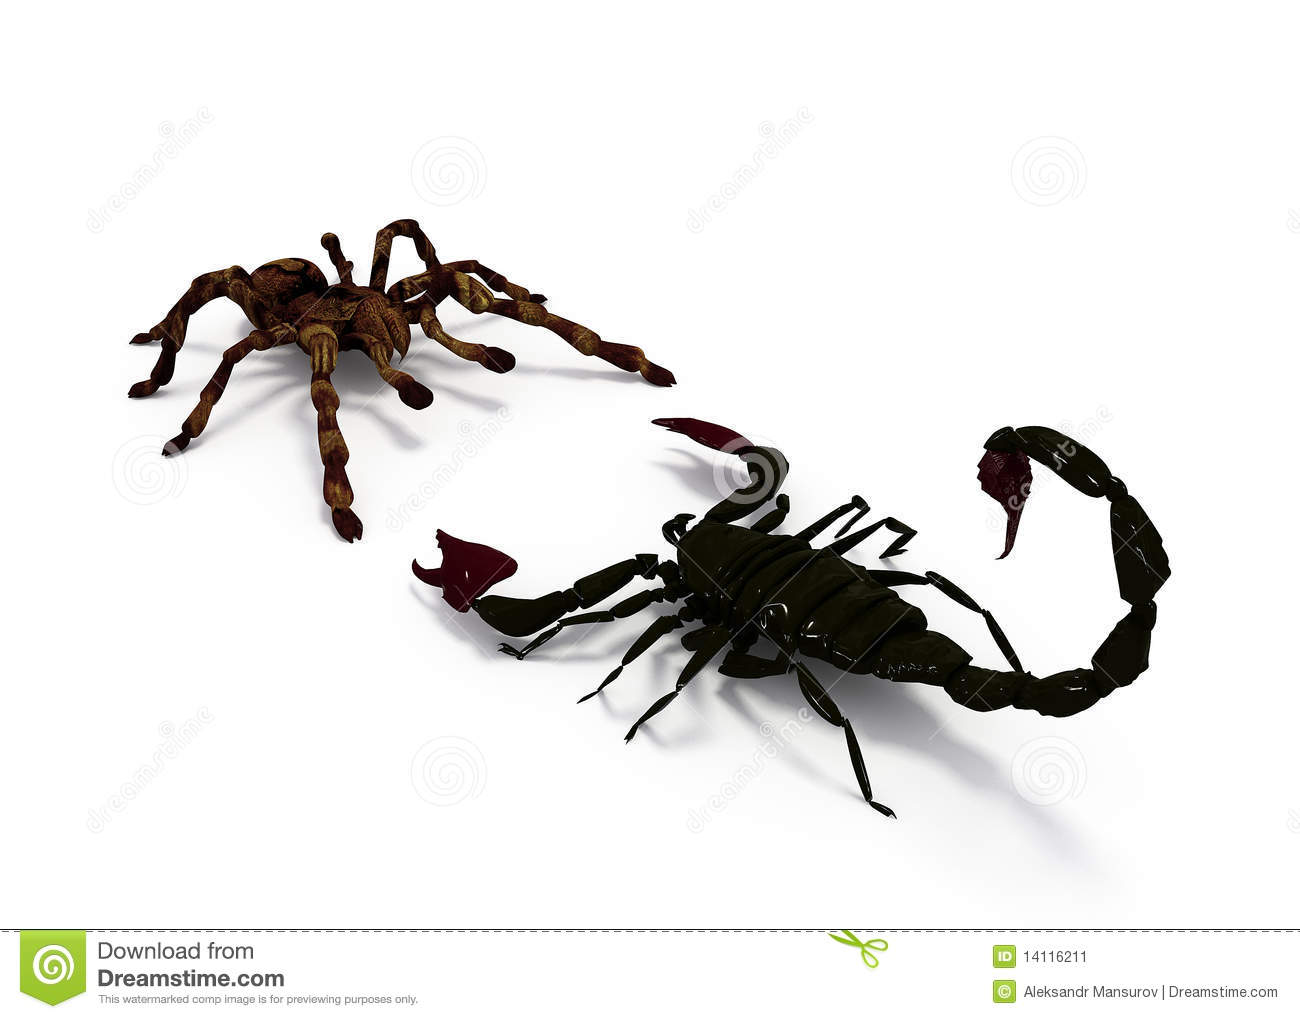 Spider vs scorpion stock illustration. Illustration of illustration ...